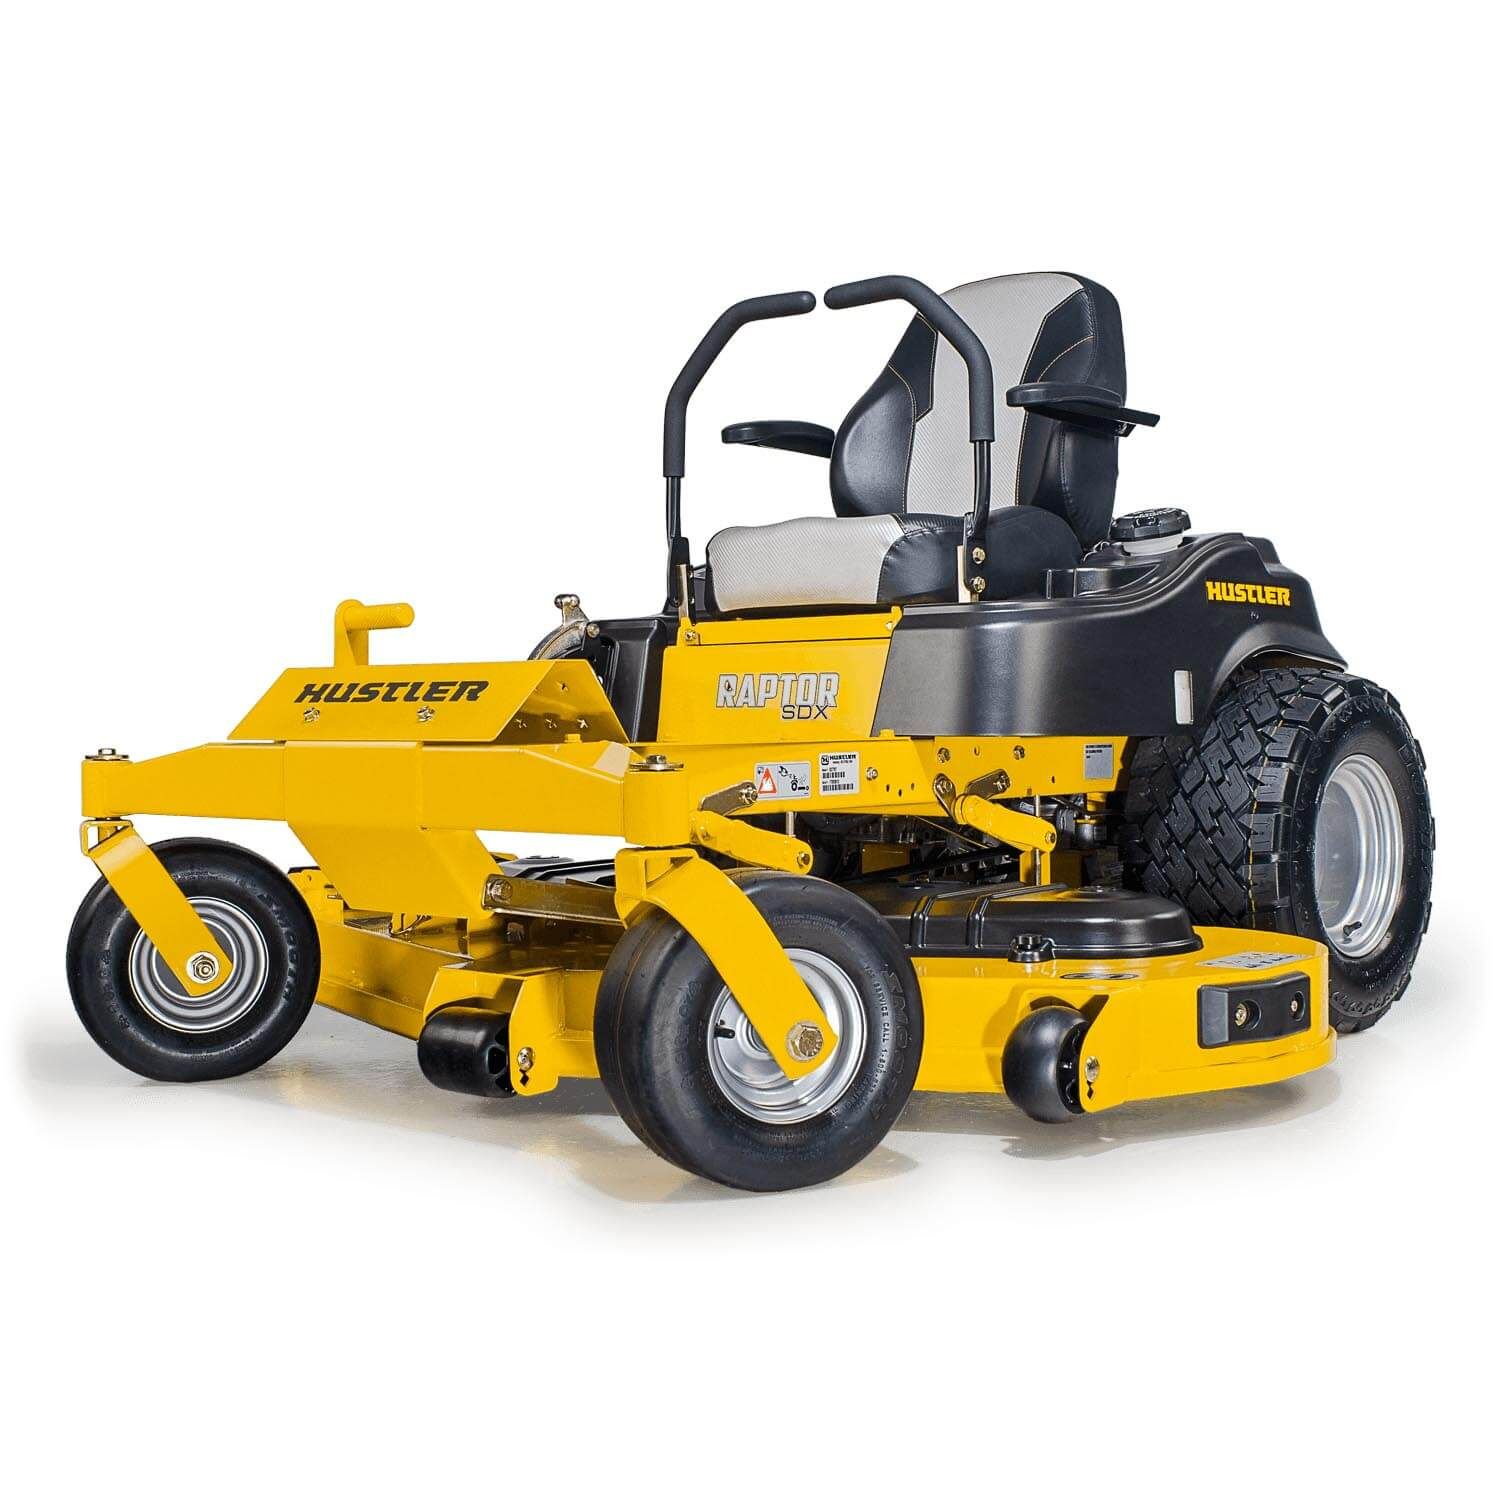 Image of front three quarters of yellow mower showing trim edge of deck